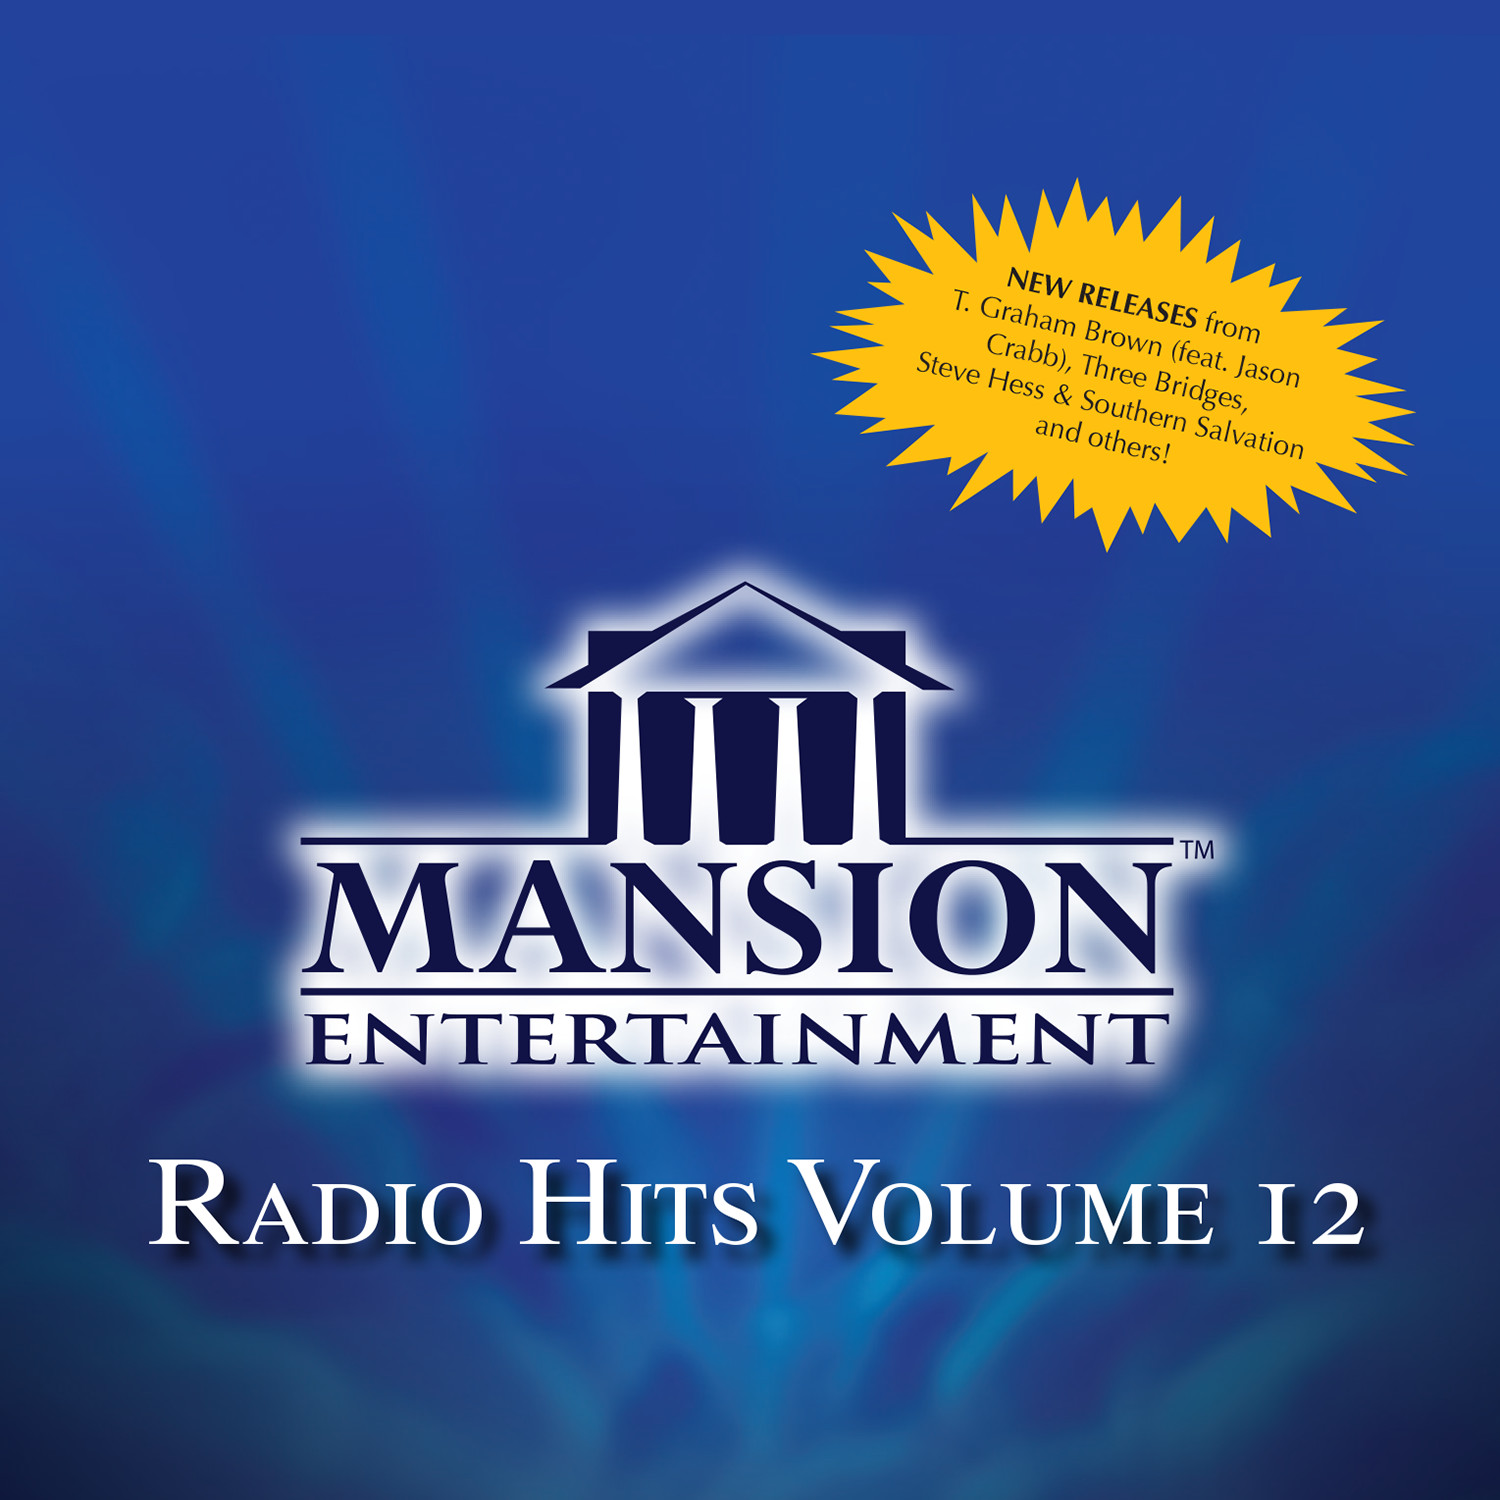 New Radio Releases from Mansion Entertainment